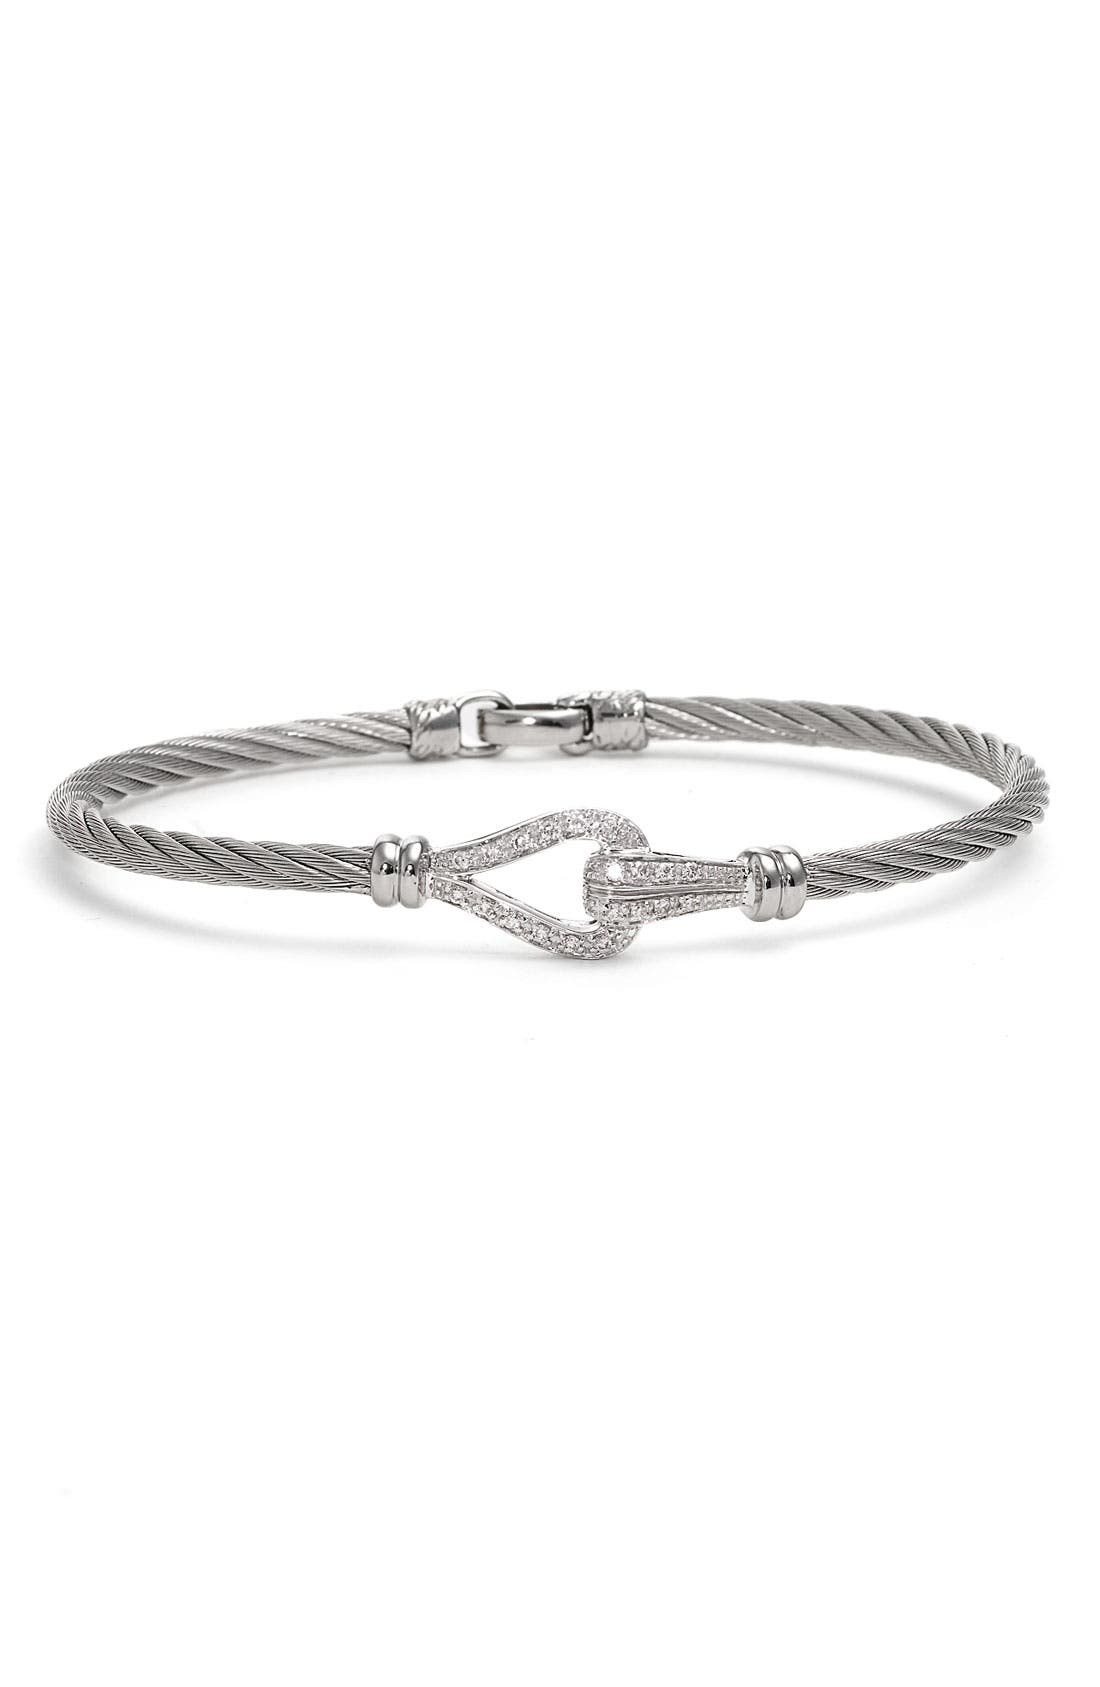 Main Image - ALOR® Overlapping Diamond Knot Bangle